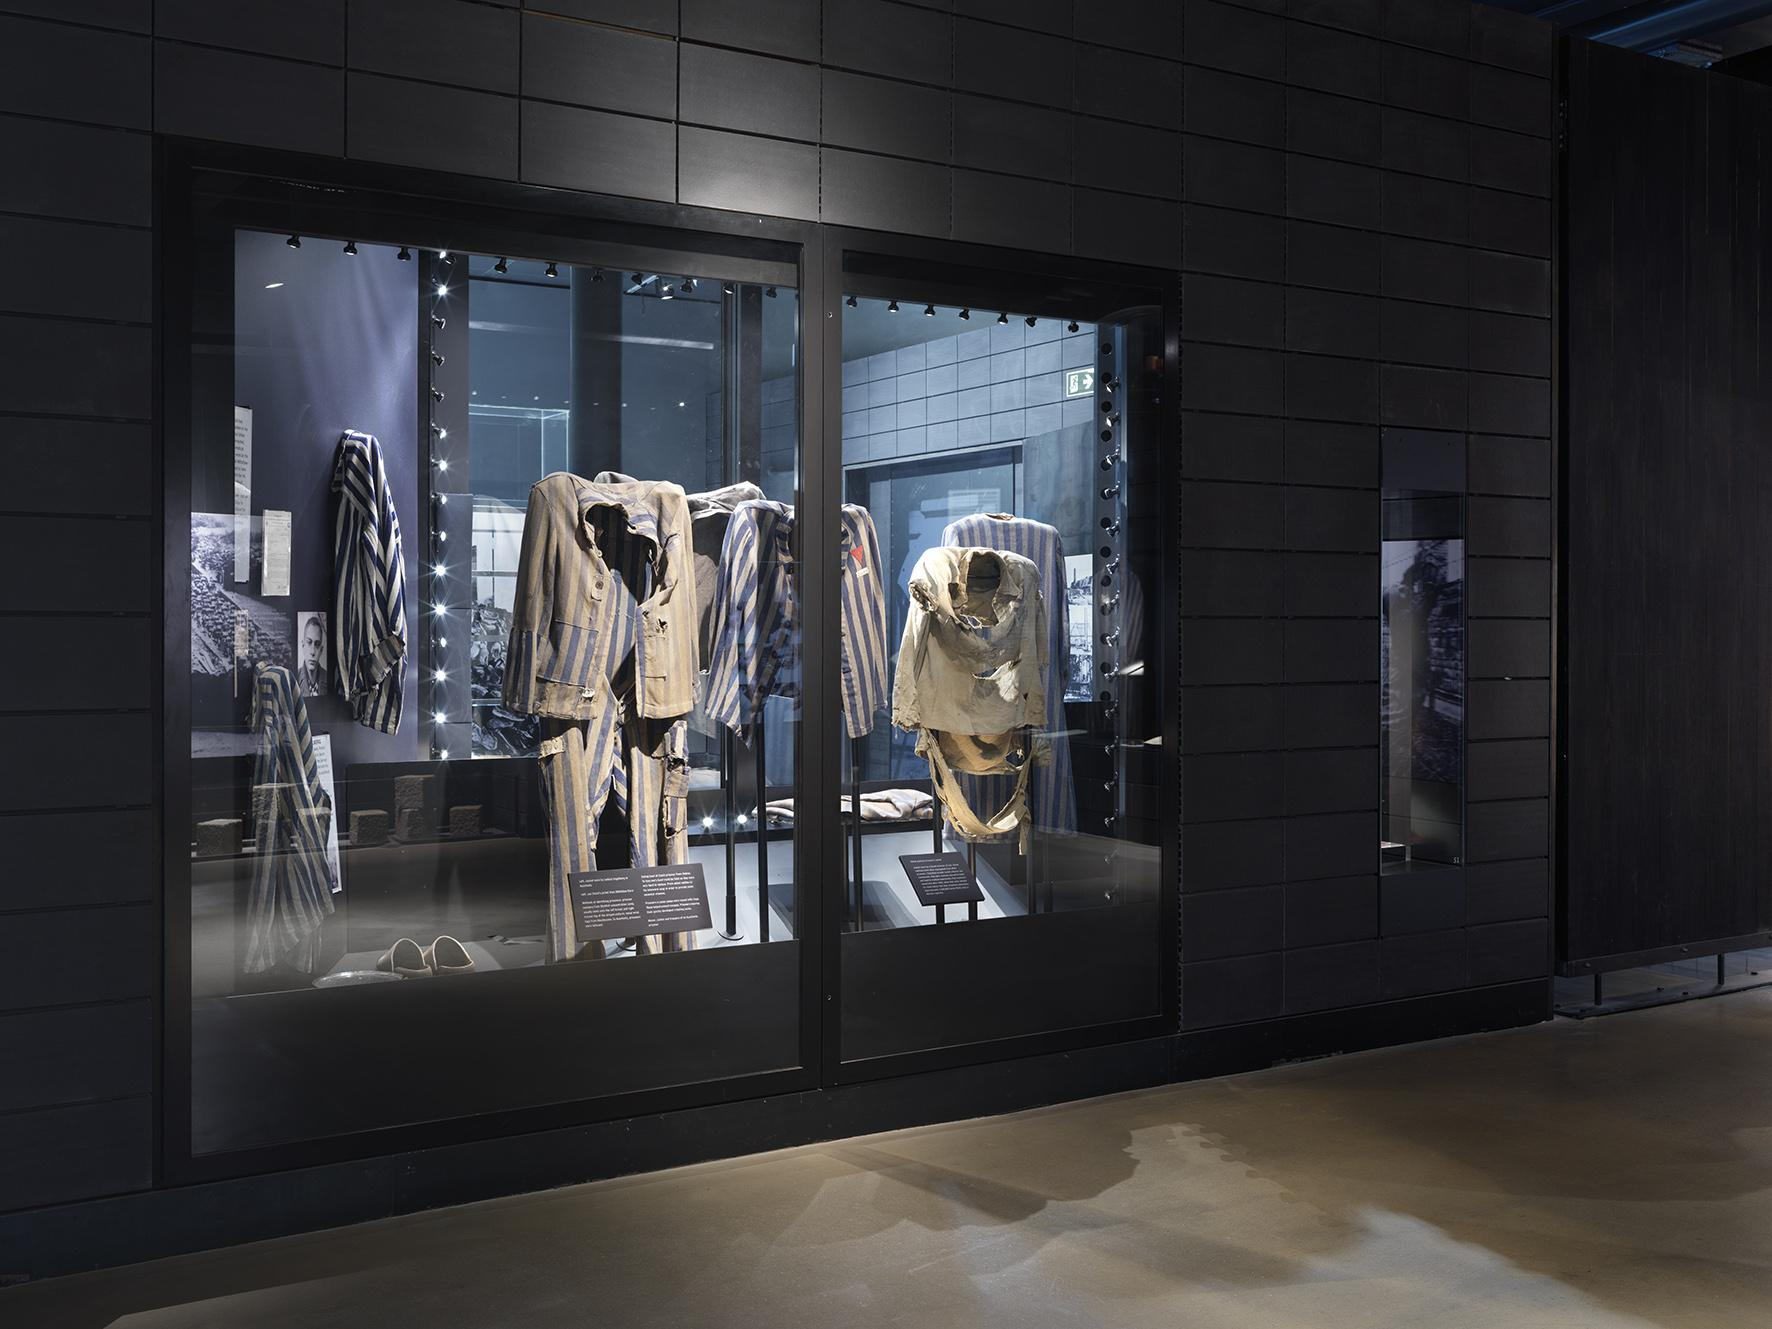 Holocaust Exhibition display case featuring concentration camp clothing